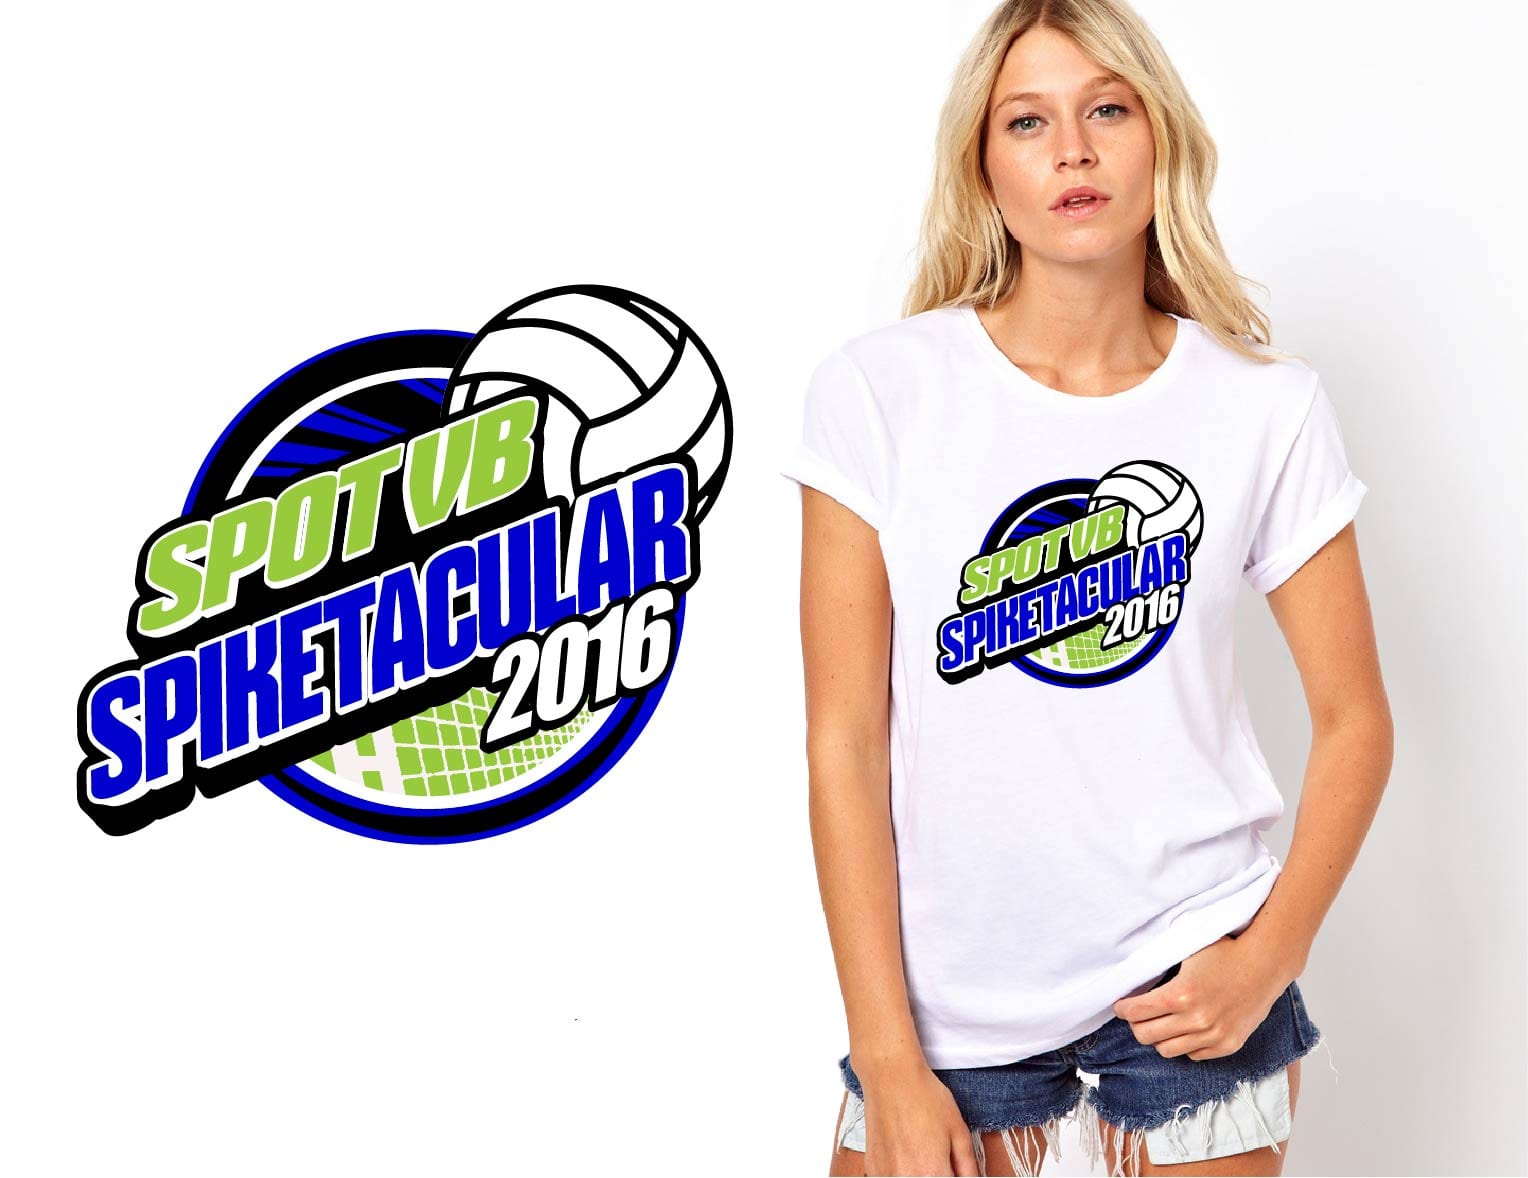 Graphic logo design by UrArtStudio April 30 2016 Spot VB Spiketacular volleyball